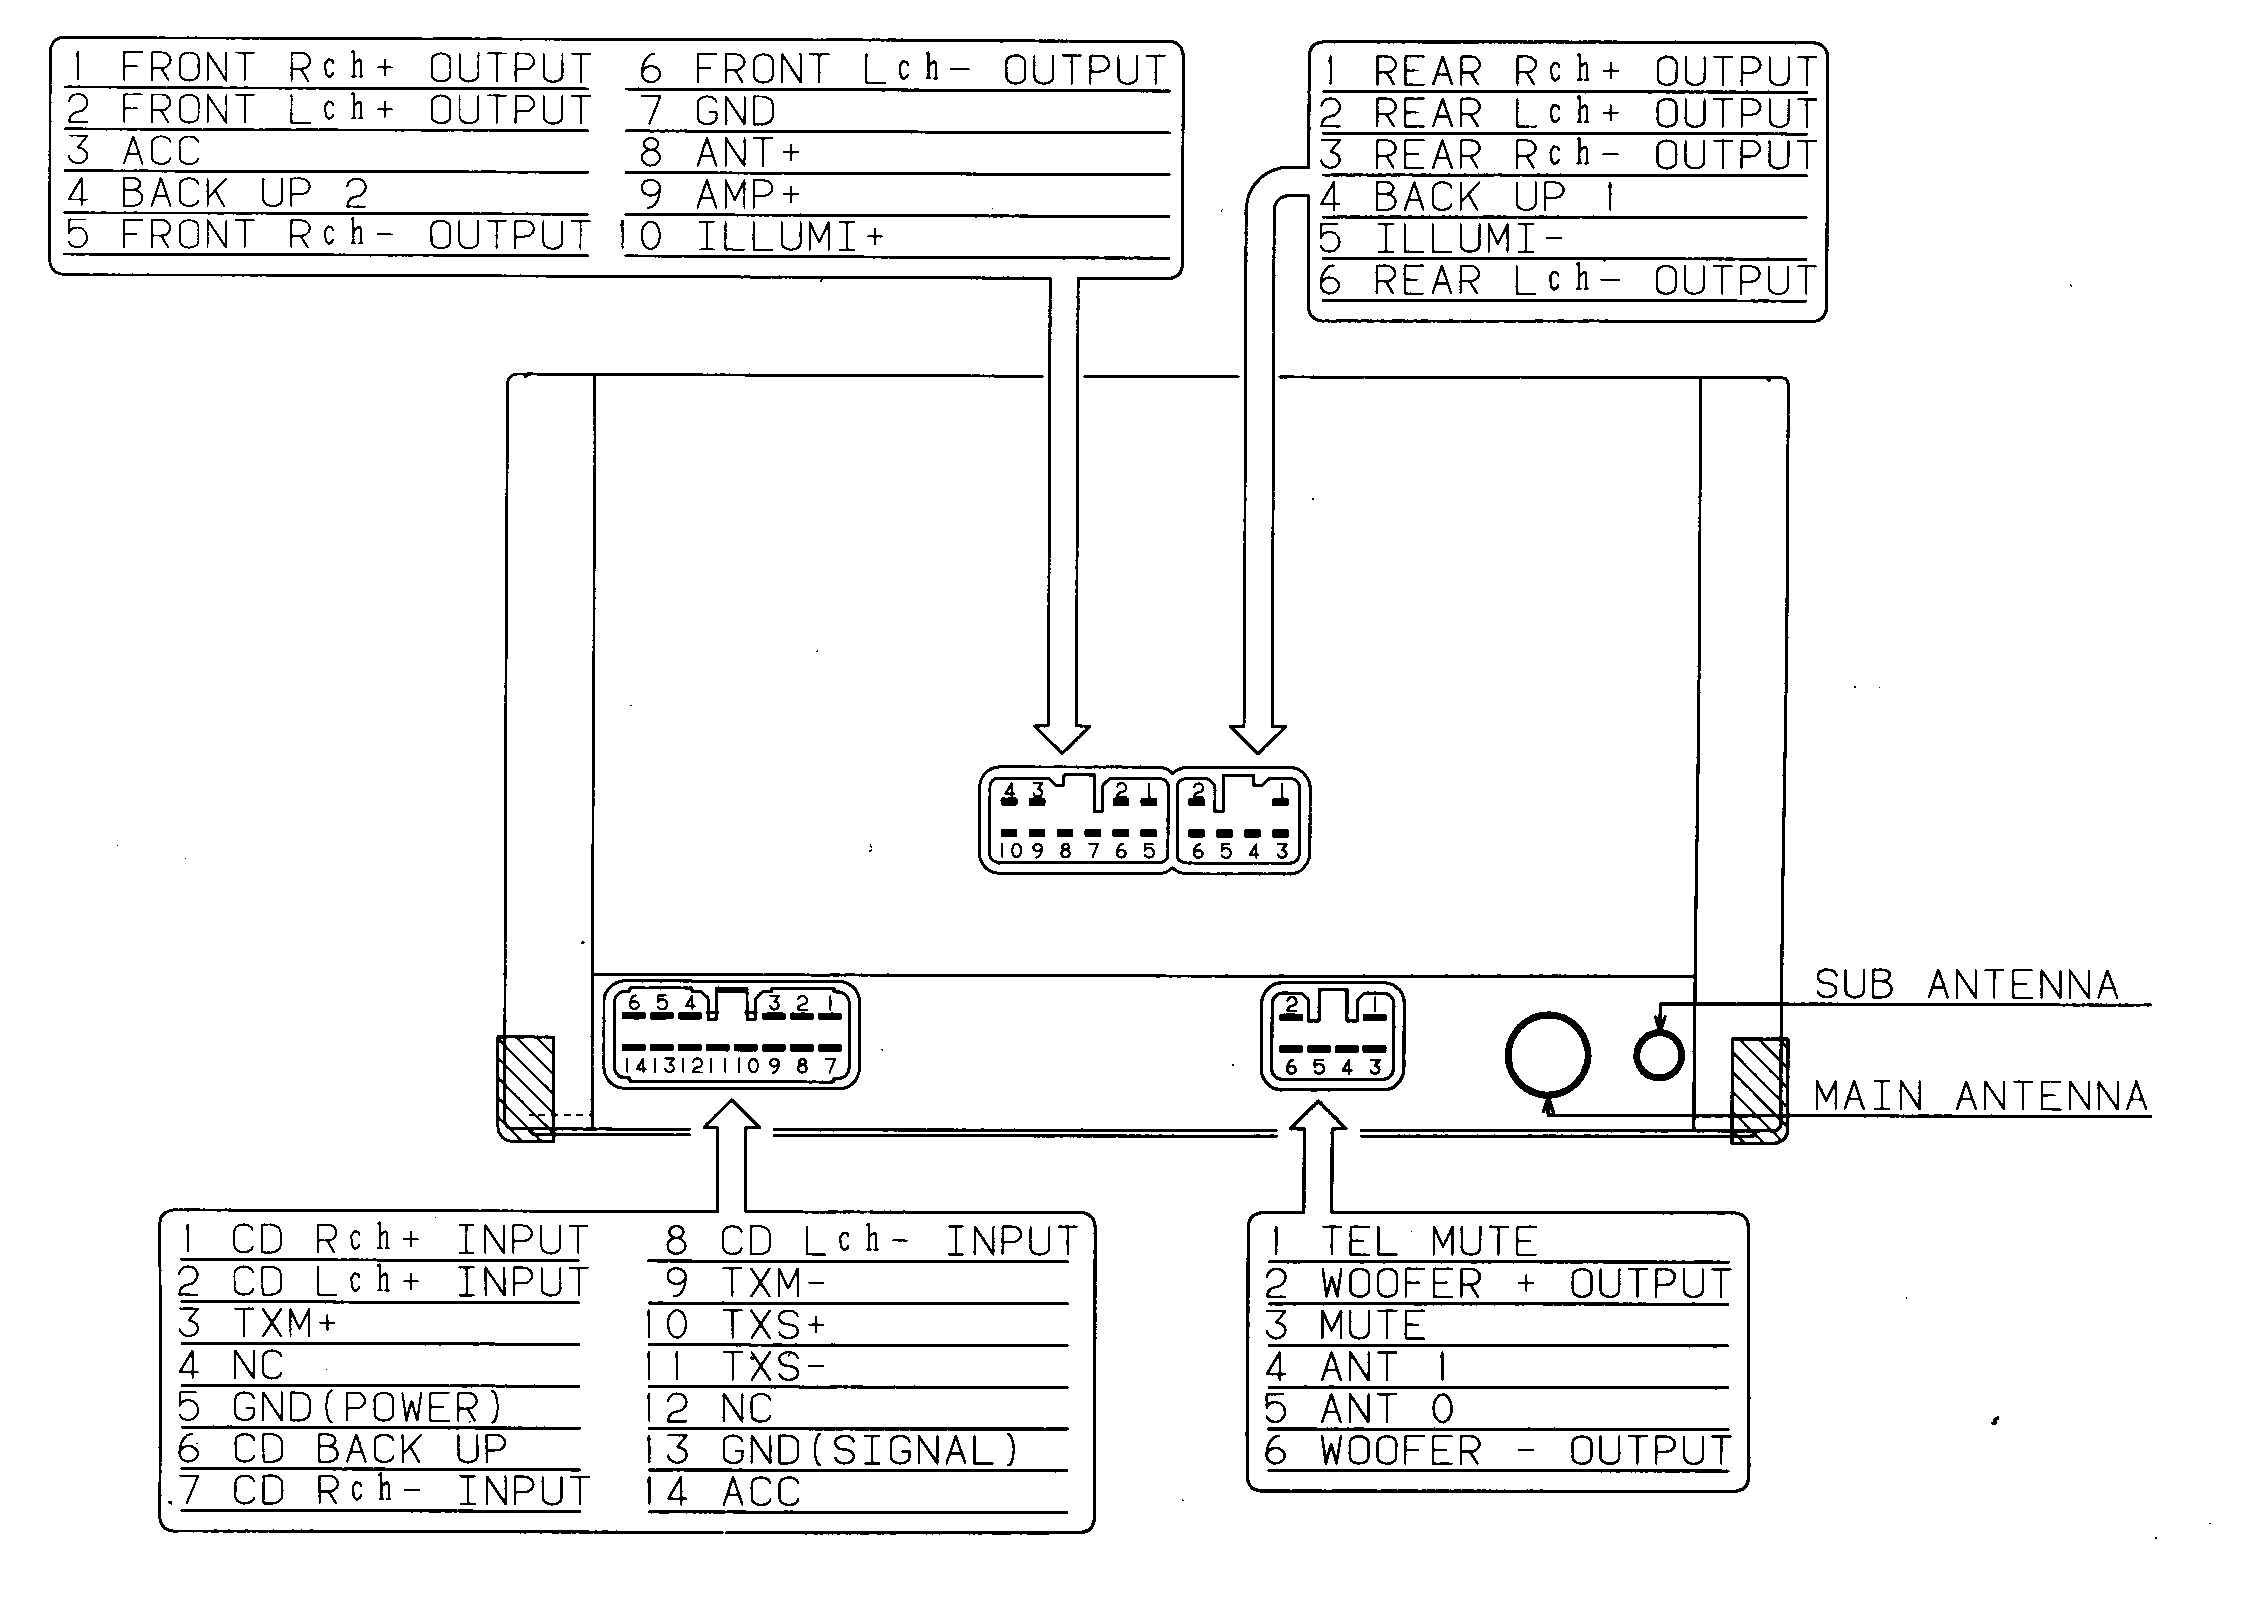 lexus car radio stereo audio wiring diagram autoradio connector wire rh tehnomagazin com lexus wiring diagram 2009 es 350 lexus rx300 wiring diagrams